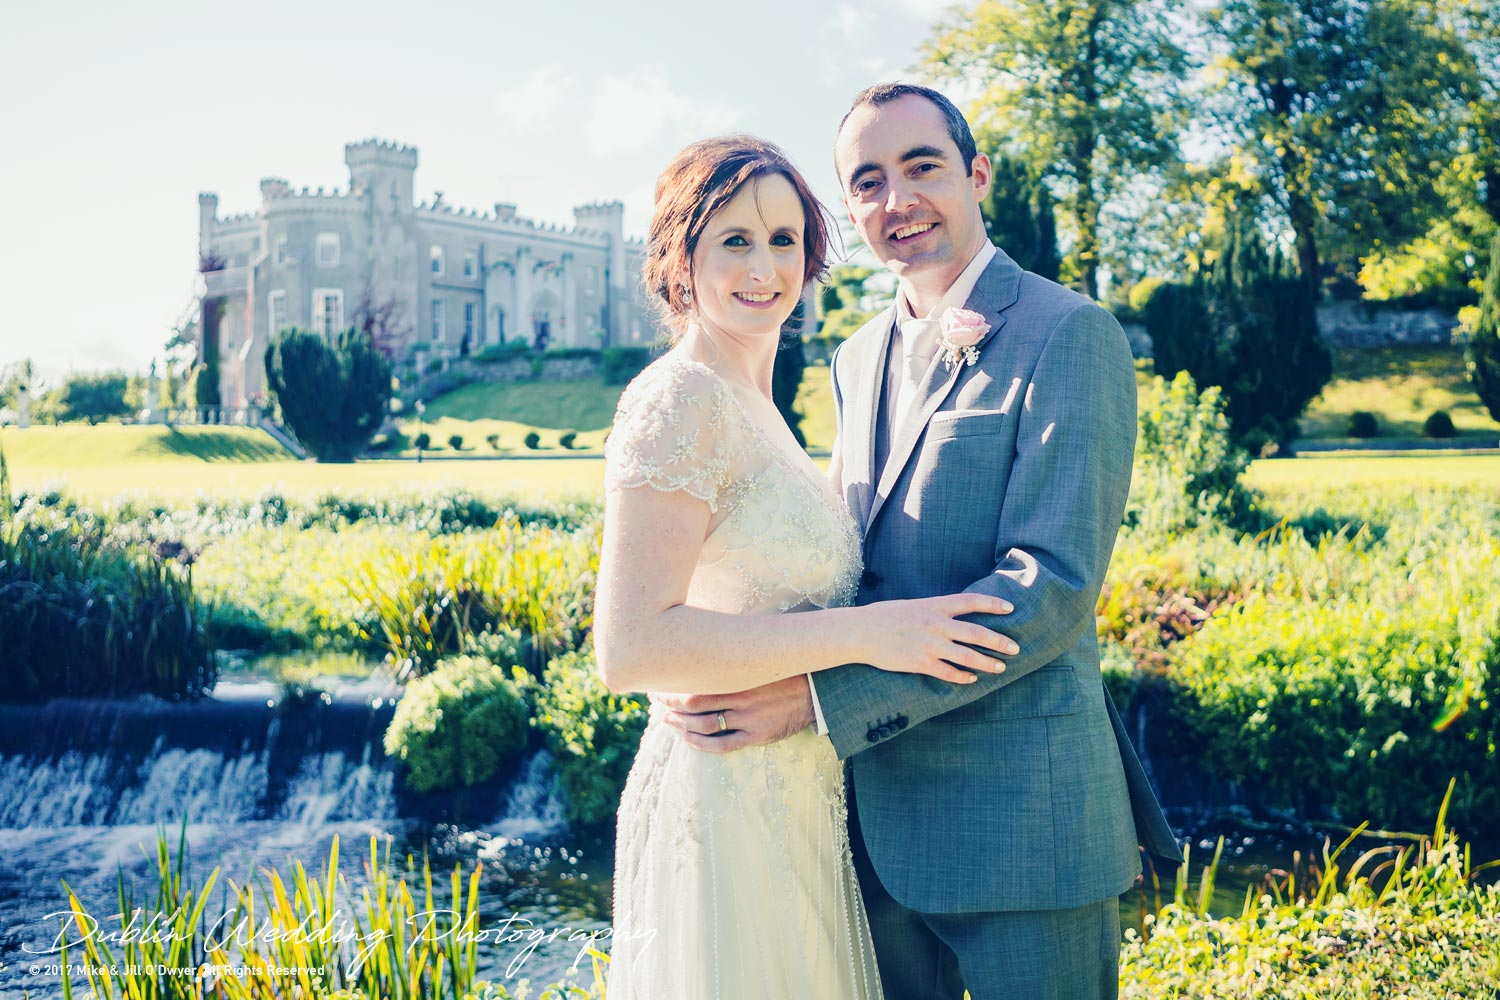 Bellingham Castle, Wedding Photographer, Louth, Dublin, Bride & Groom Outside bellingham castle